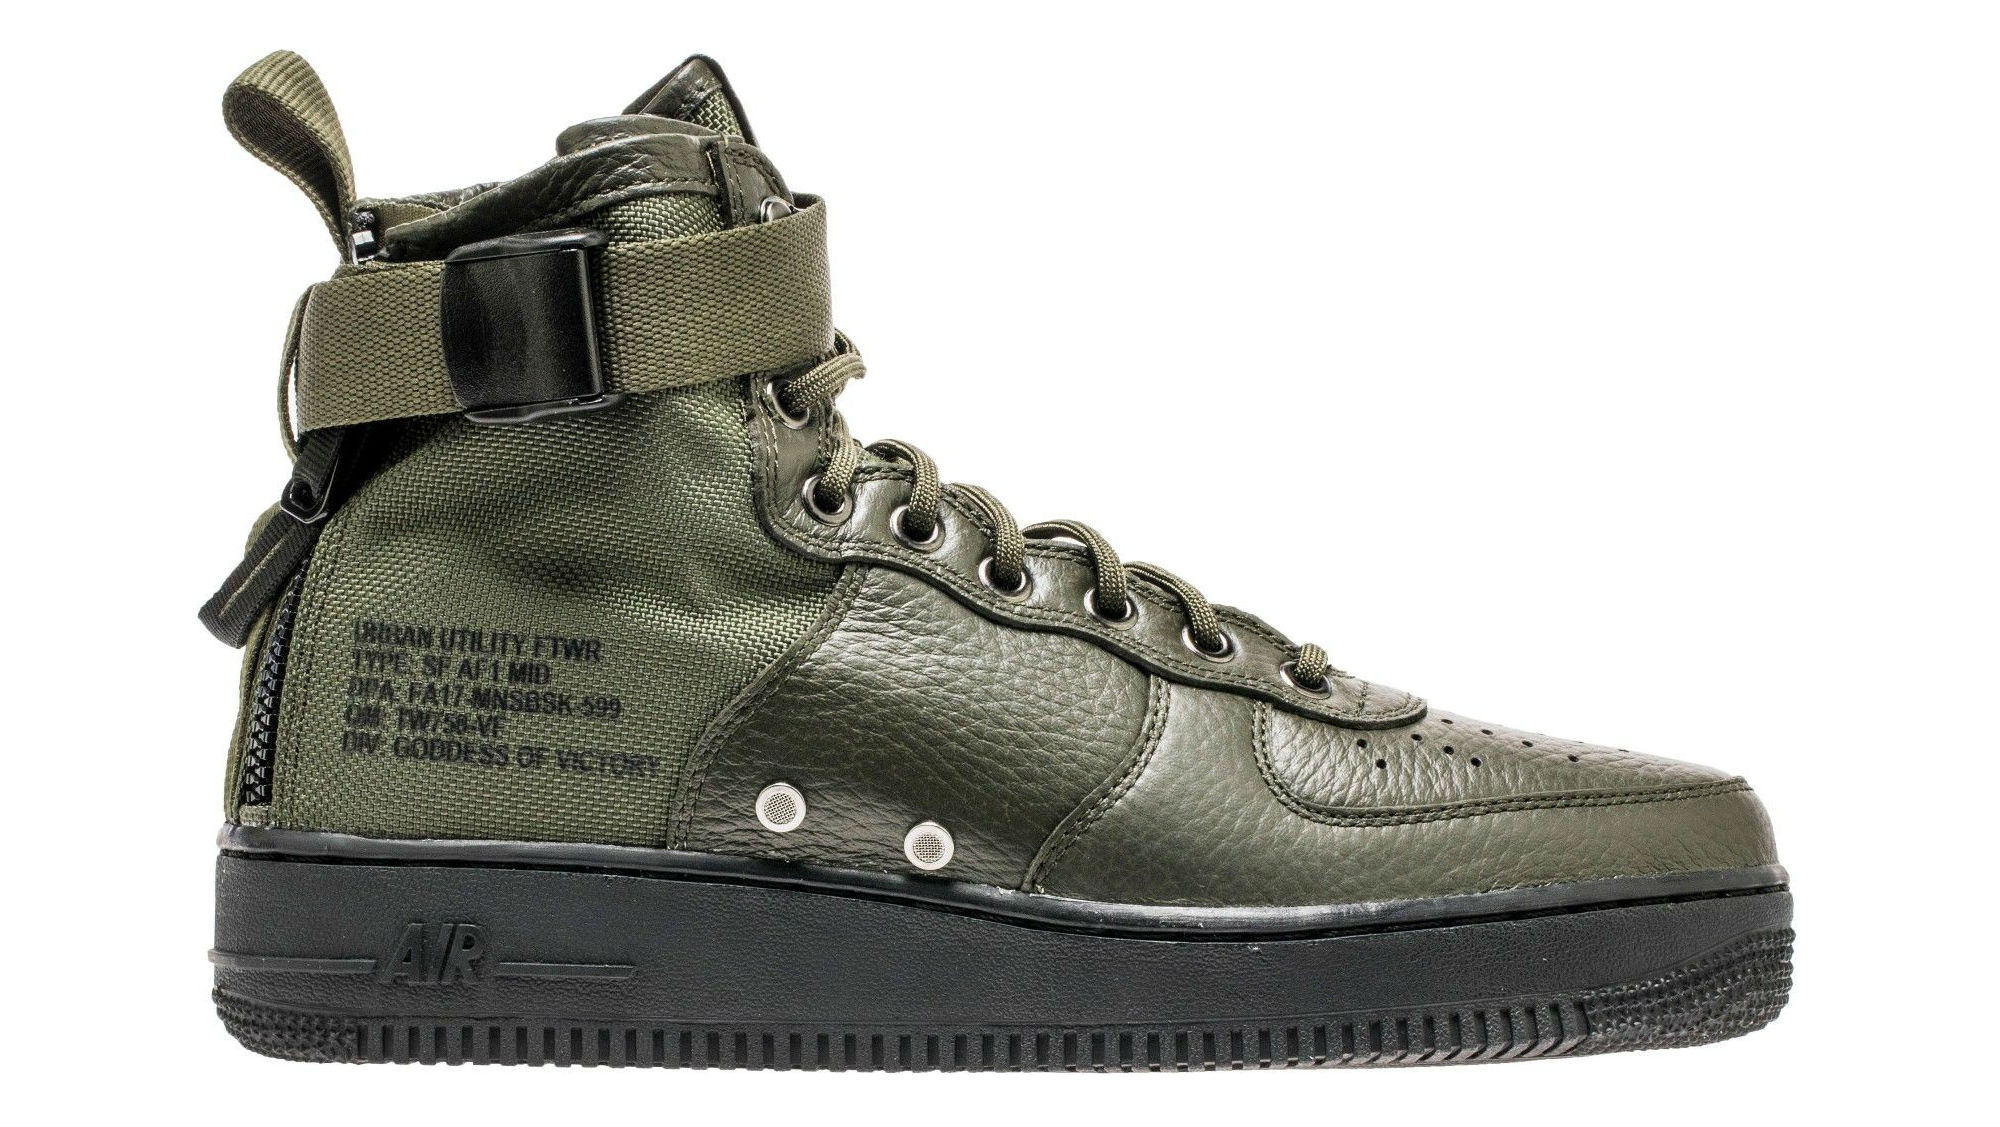 Nike Special Field Air Force 1 Mid Sequoia/Sequoia-Black